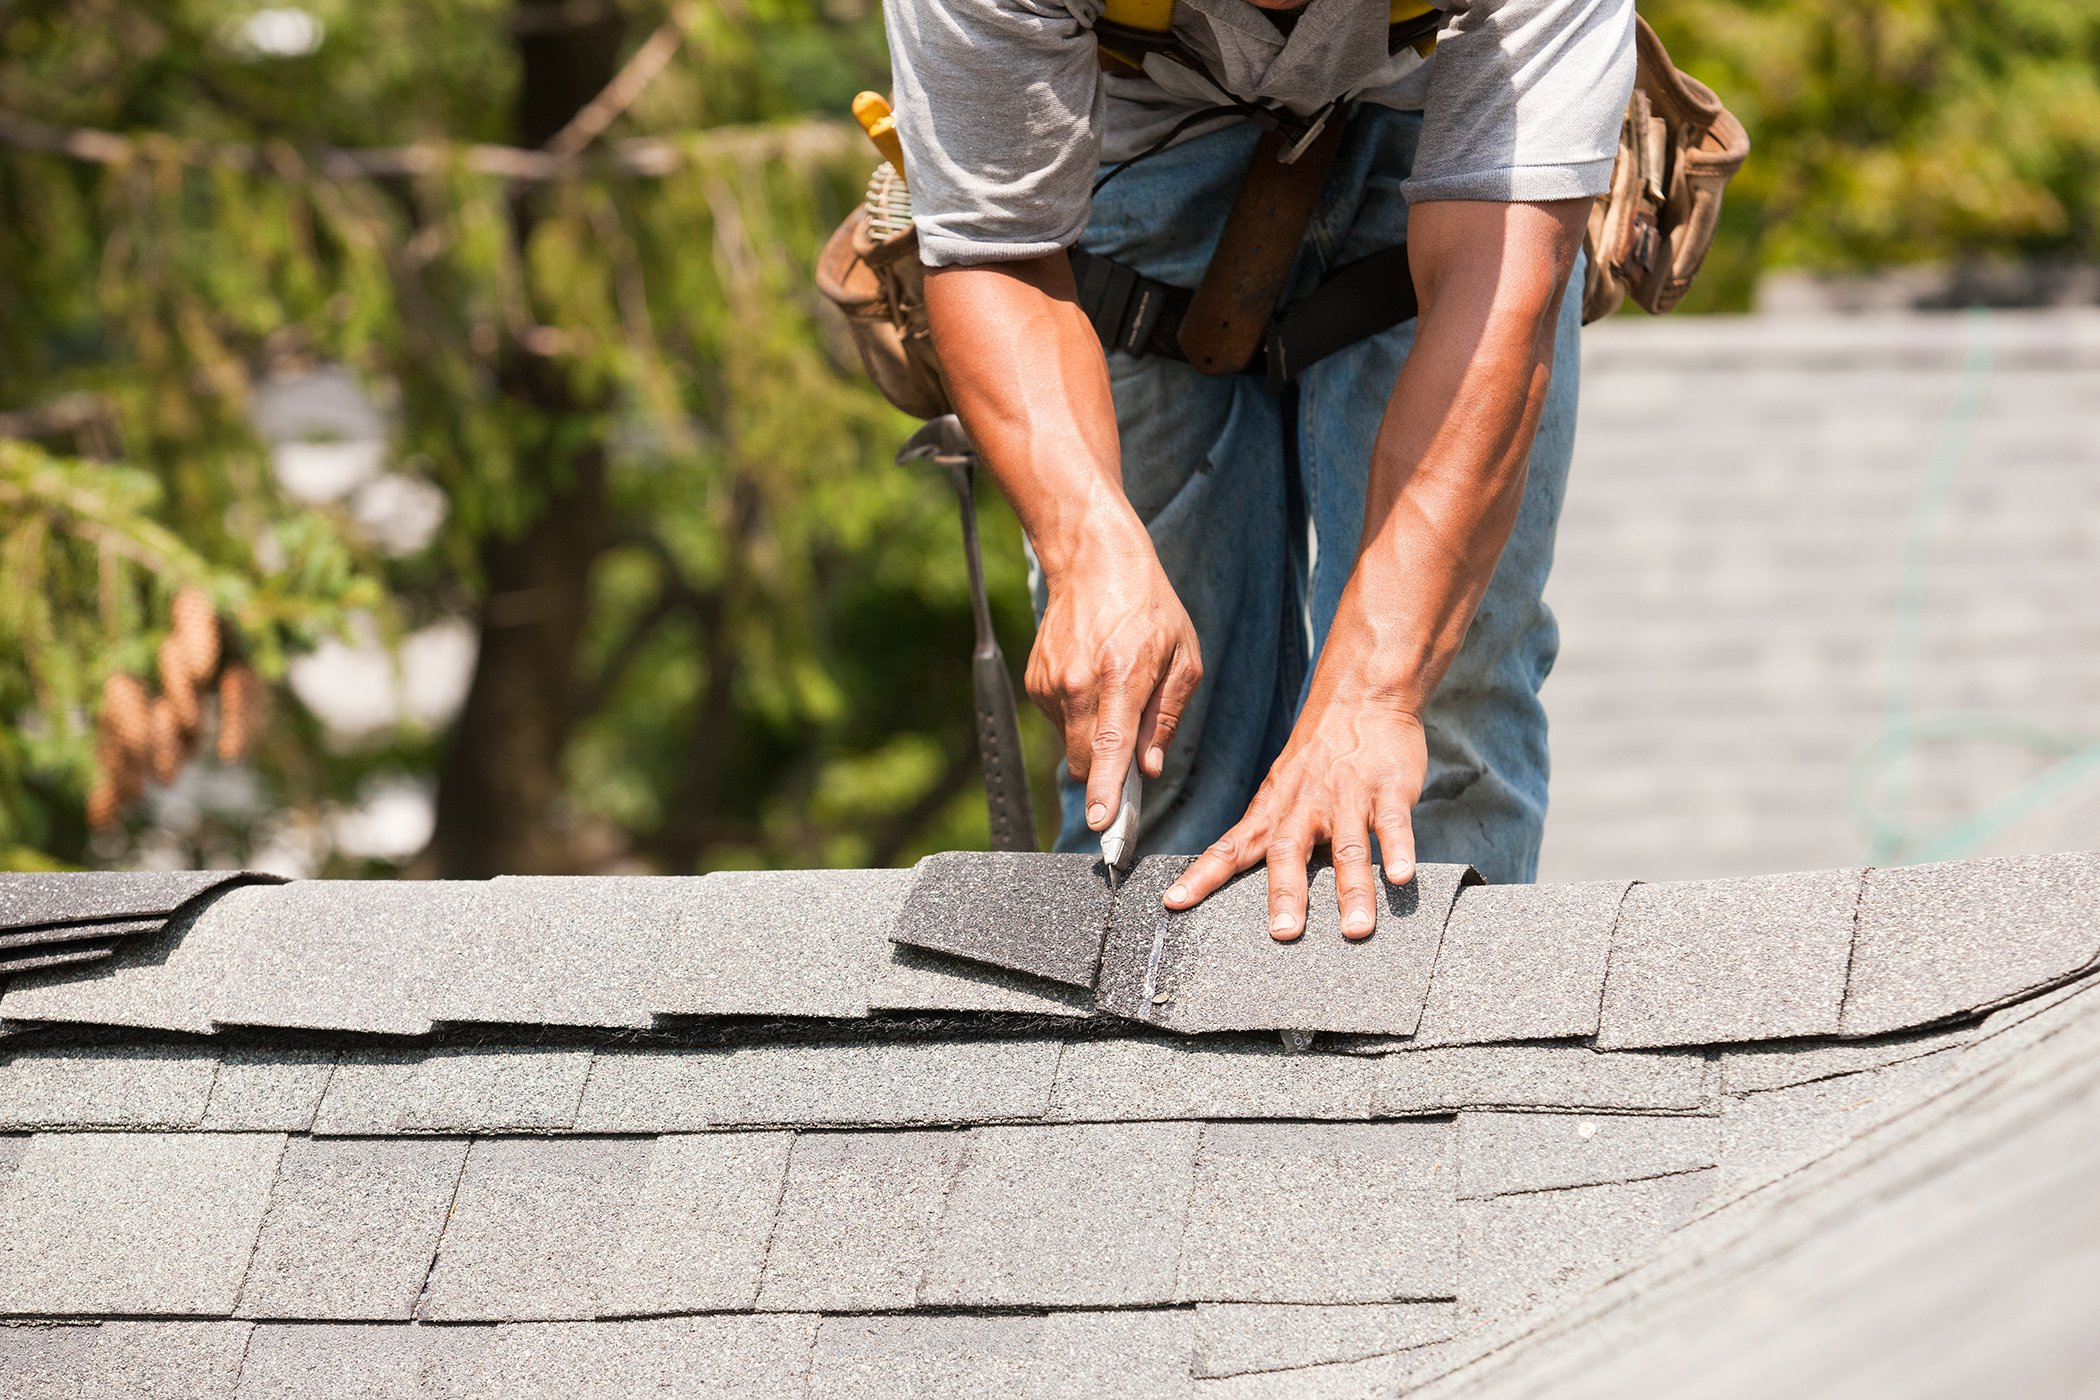 Roofing Repair Companies Near Me Mobile, AL 36605